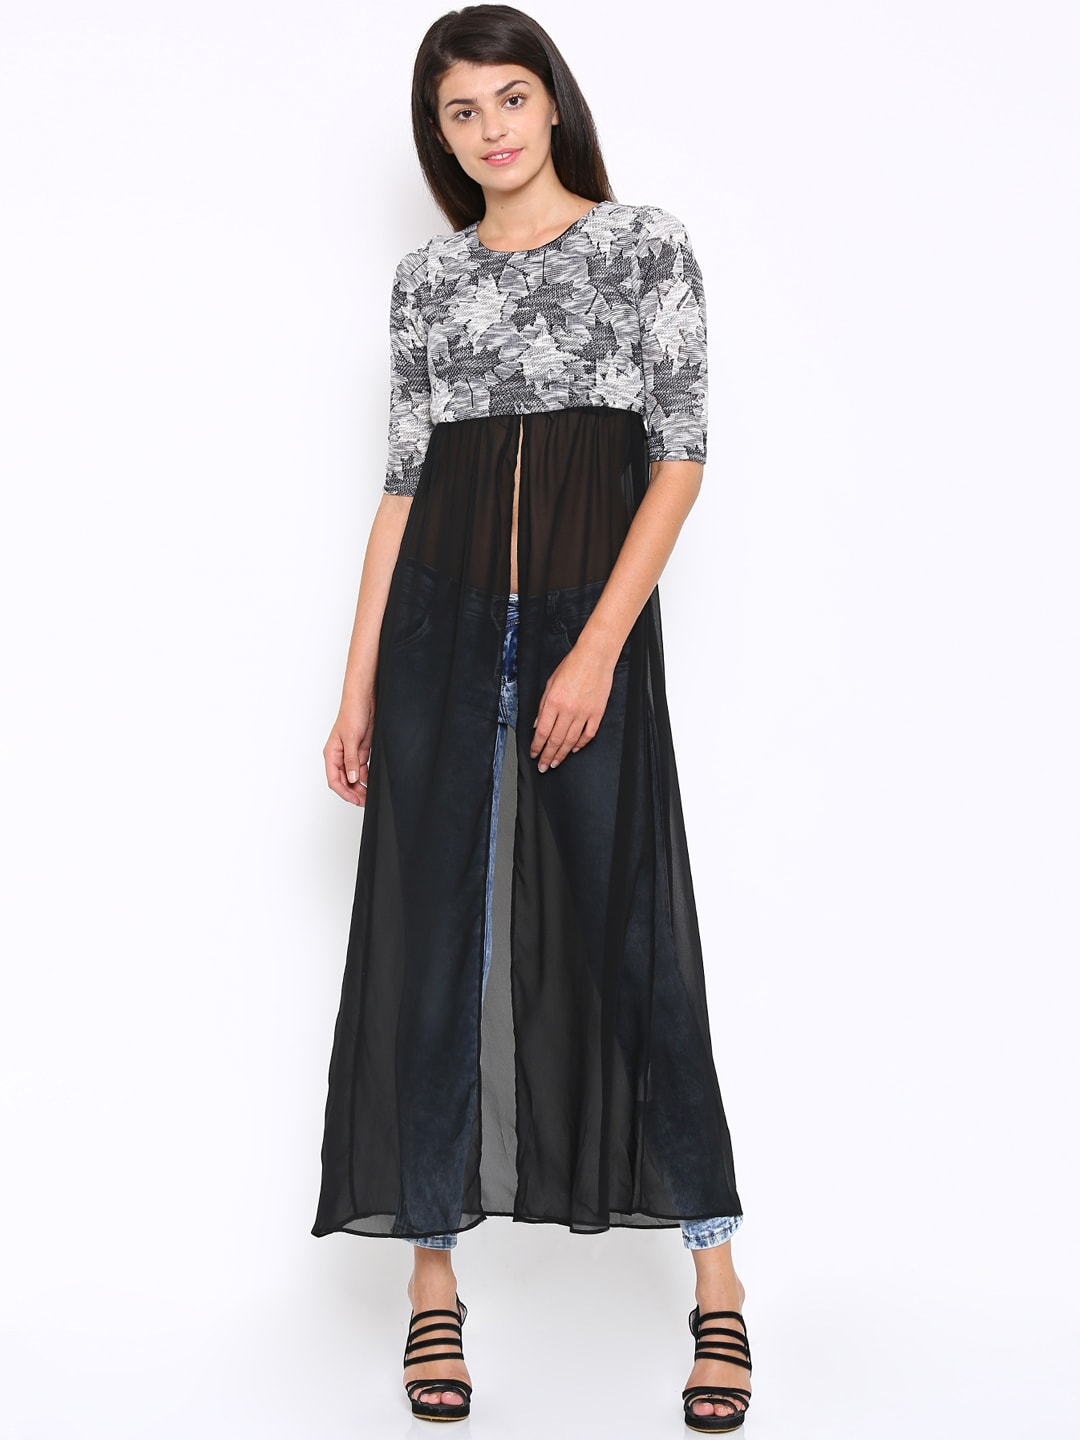 Deal Jeans Women Black & White Self-Design Maxi Top